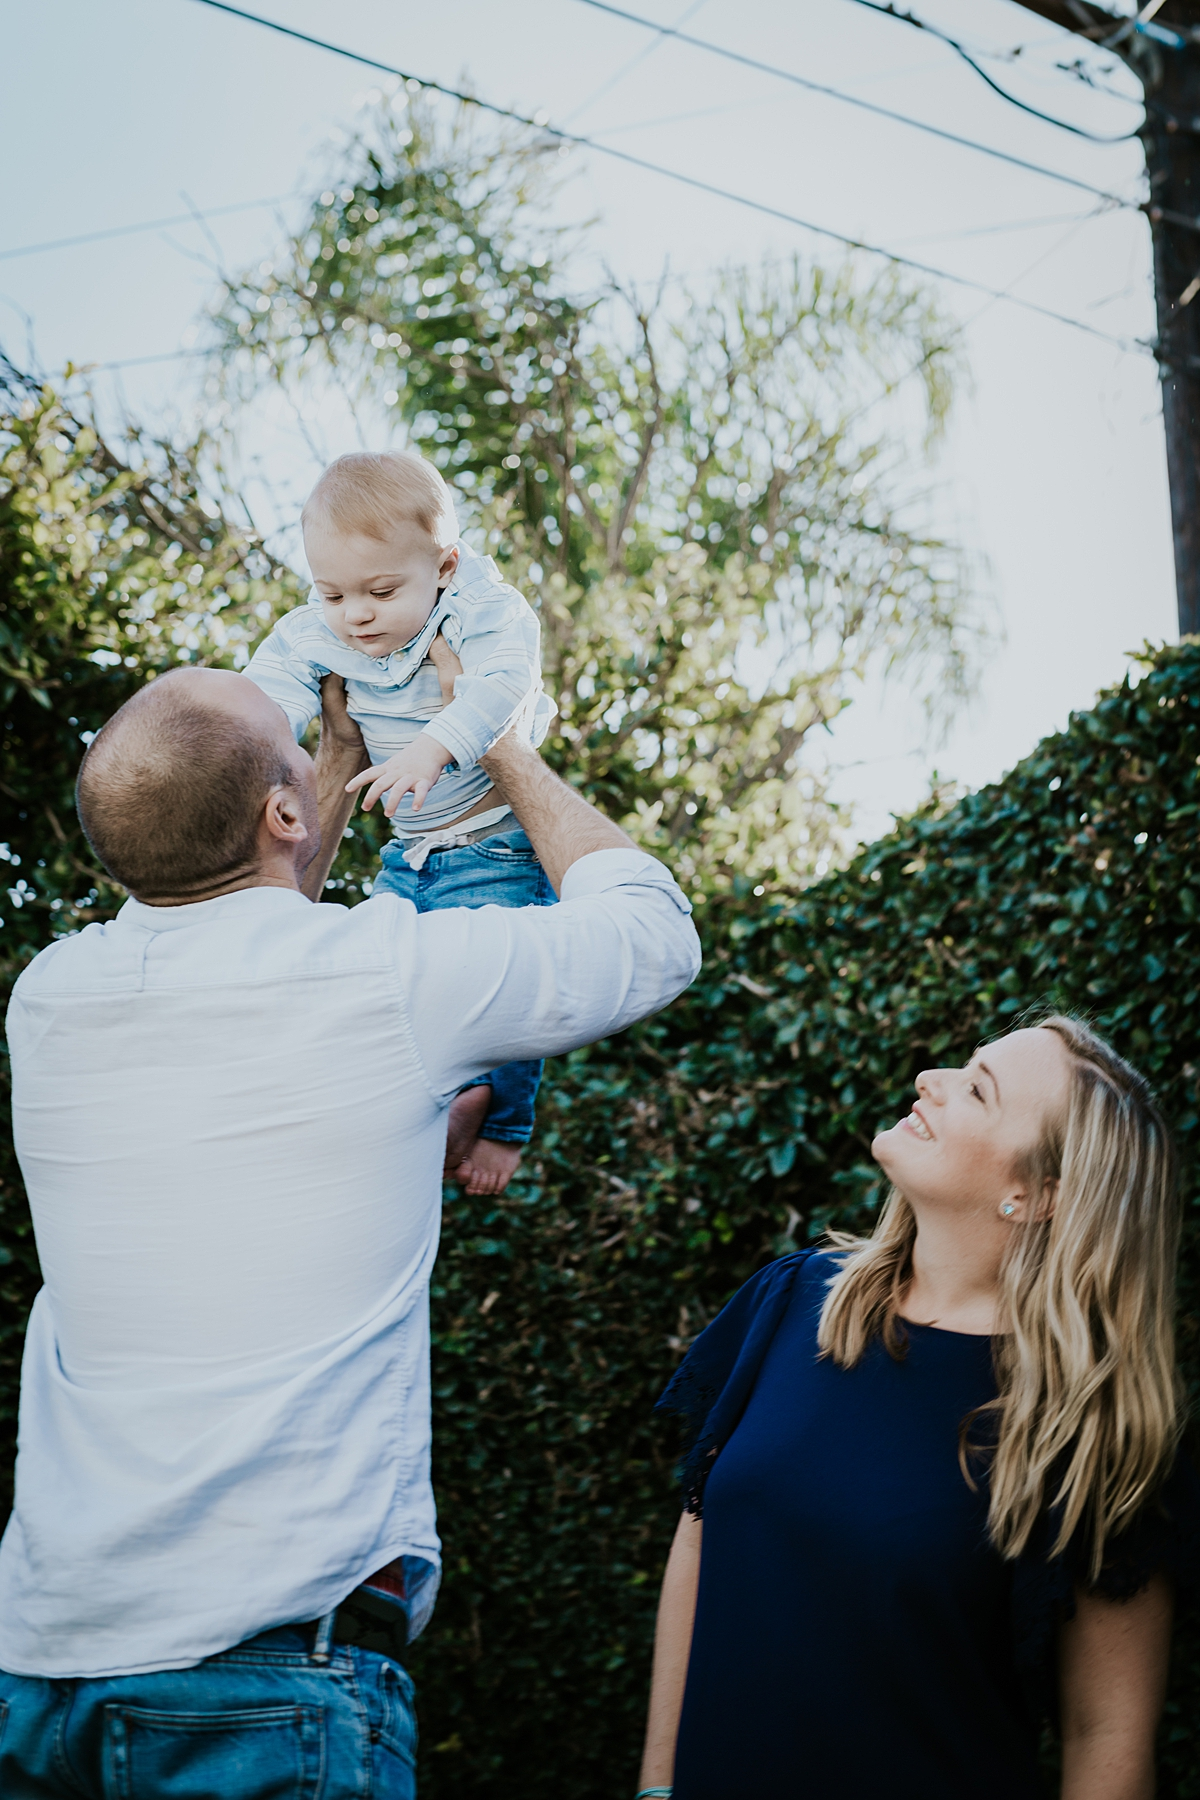 Orange County family photographer. photo of dad throwing son in the air while mom watches during in home family photo shoot in Huntington Beach